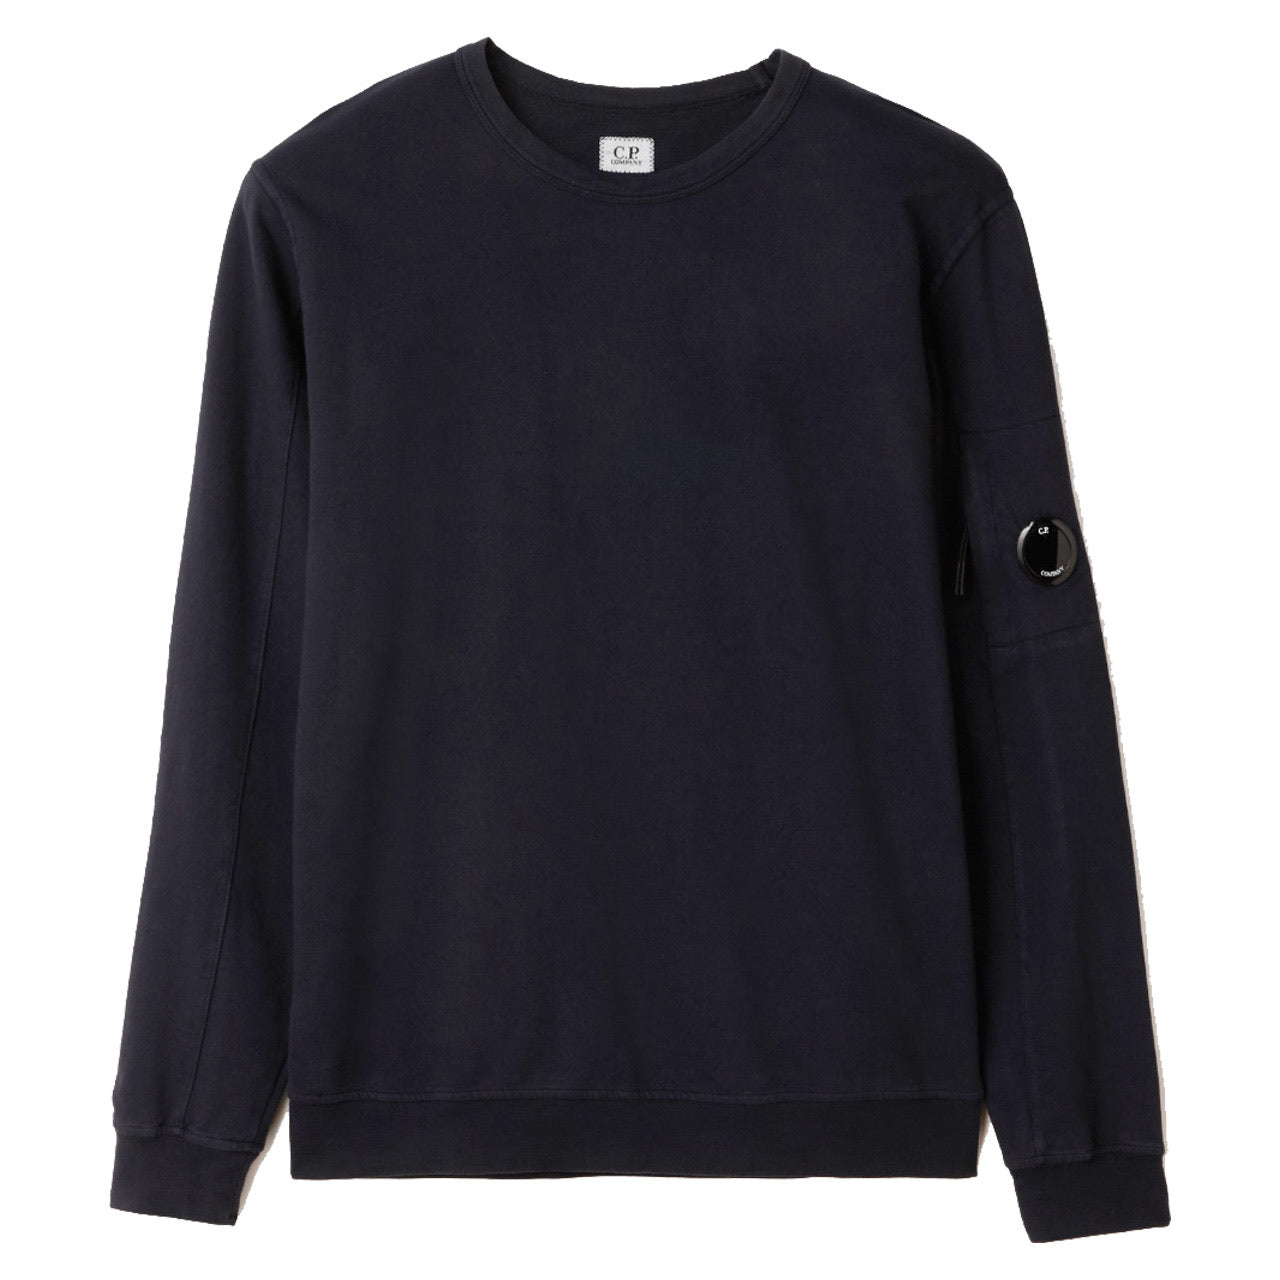 C.P. Company Light Fleece Garment Dyed Sweatshirt Blue